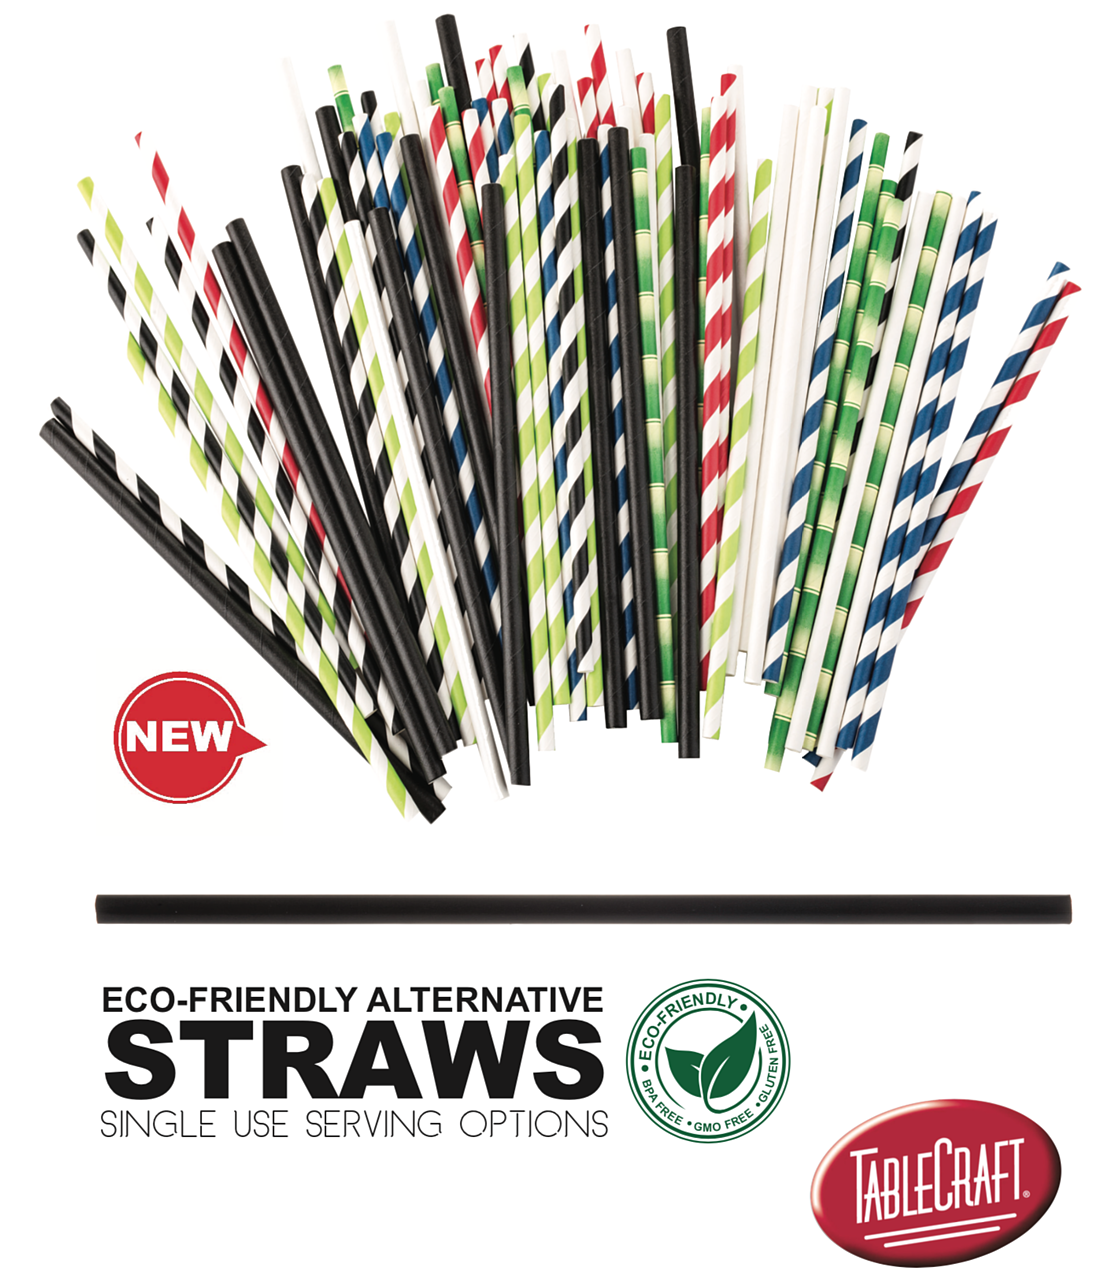 A Quick Look at the Eco-Friendly Straw Trend